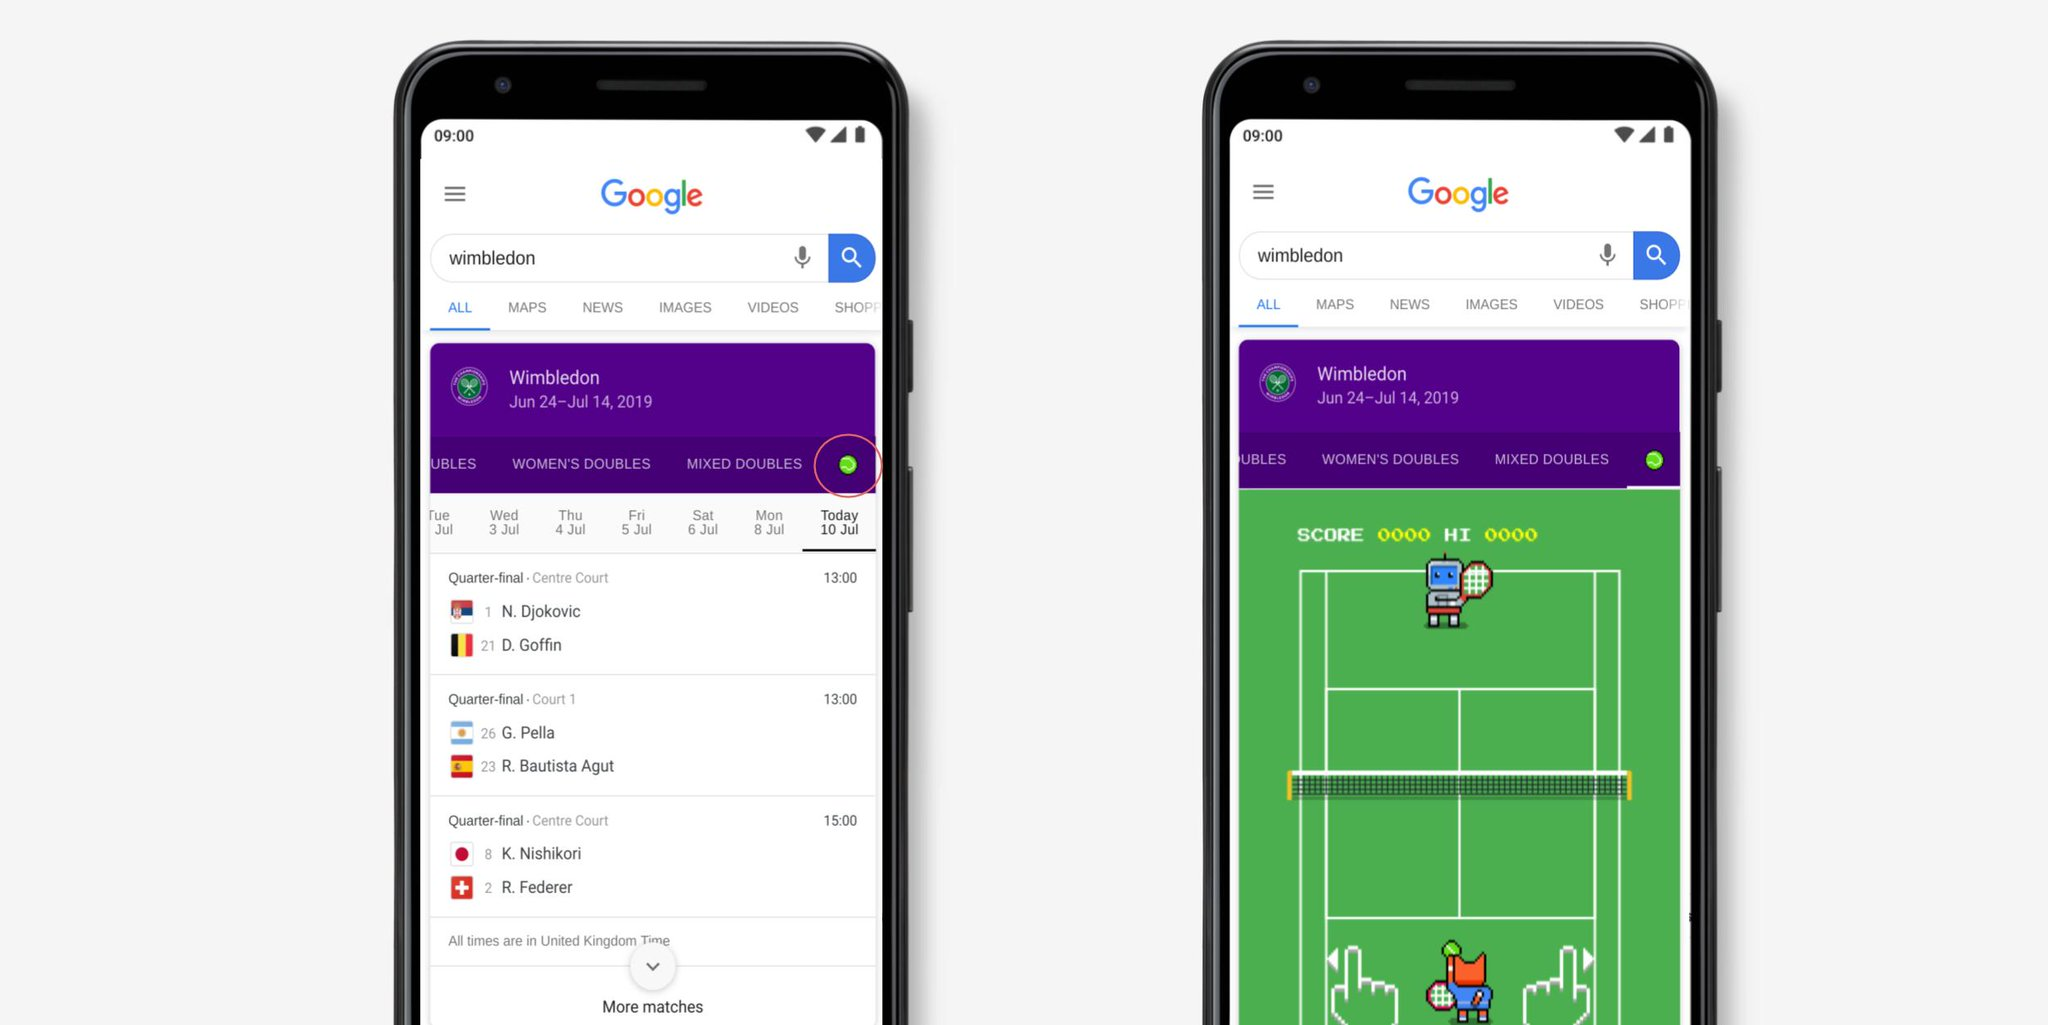 Google serves up tennis mini-game to mark 2019 Wimbledon tournament